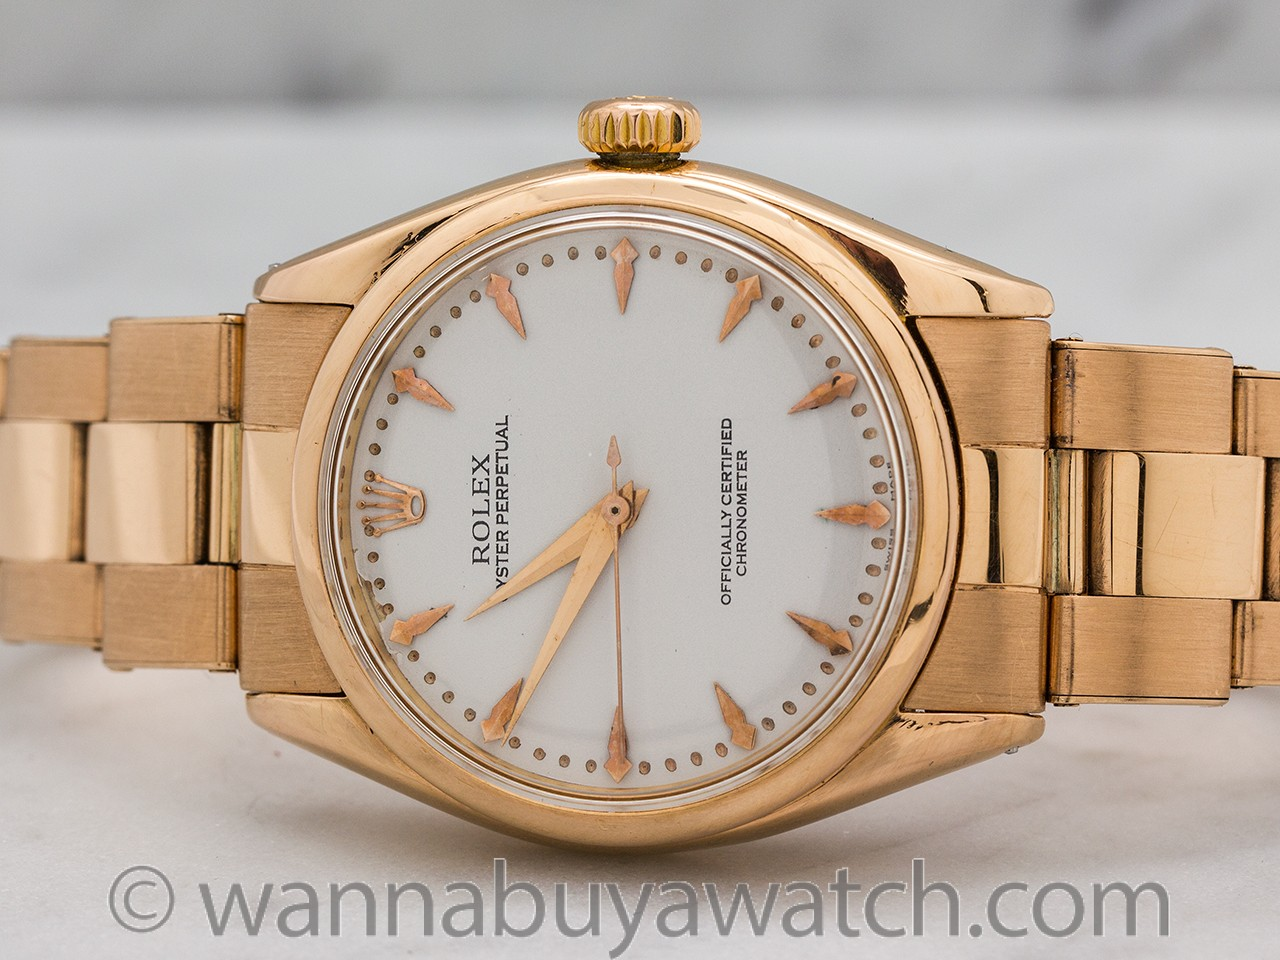 Rolex Oyster Perpetual ref 6284 18K Rose Gold circa 1950's